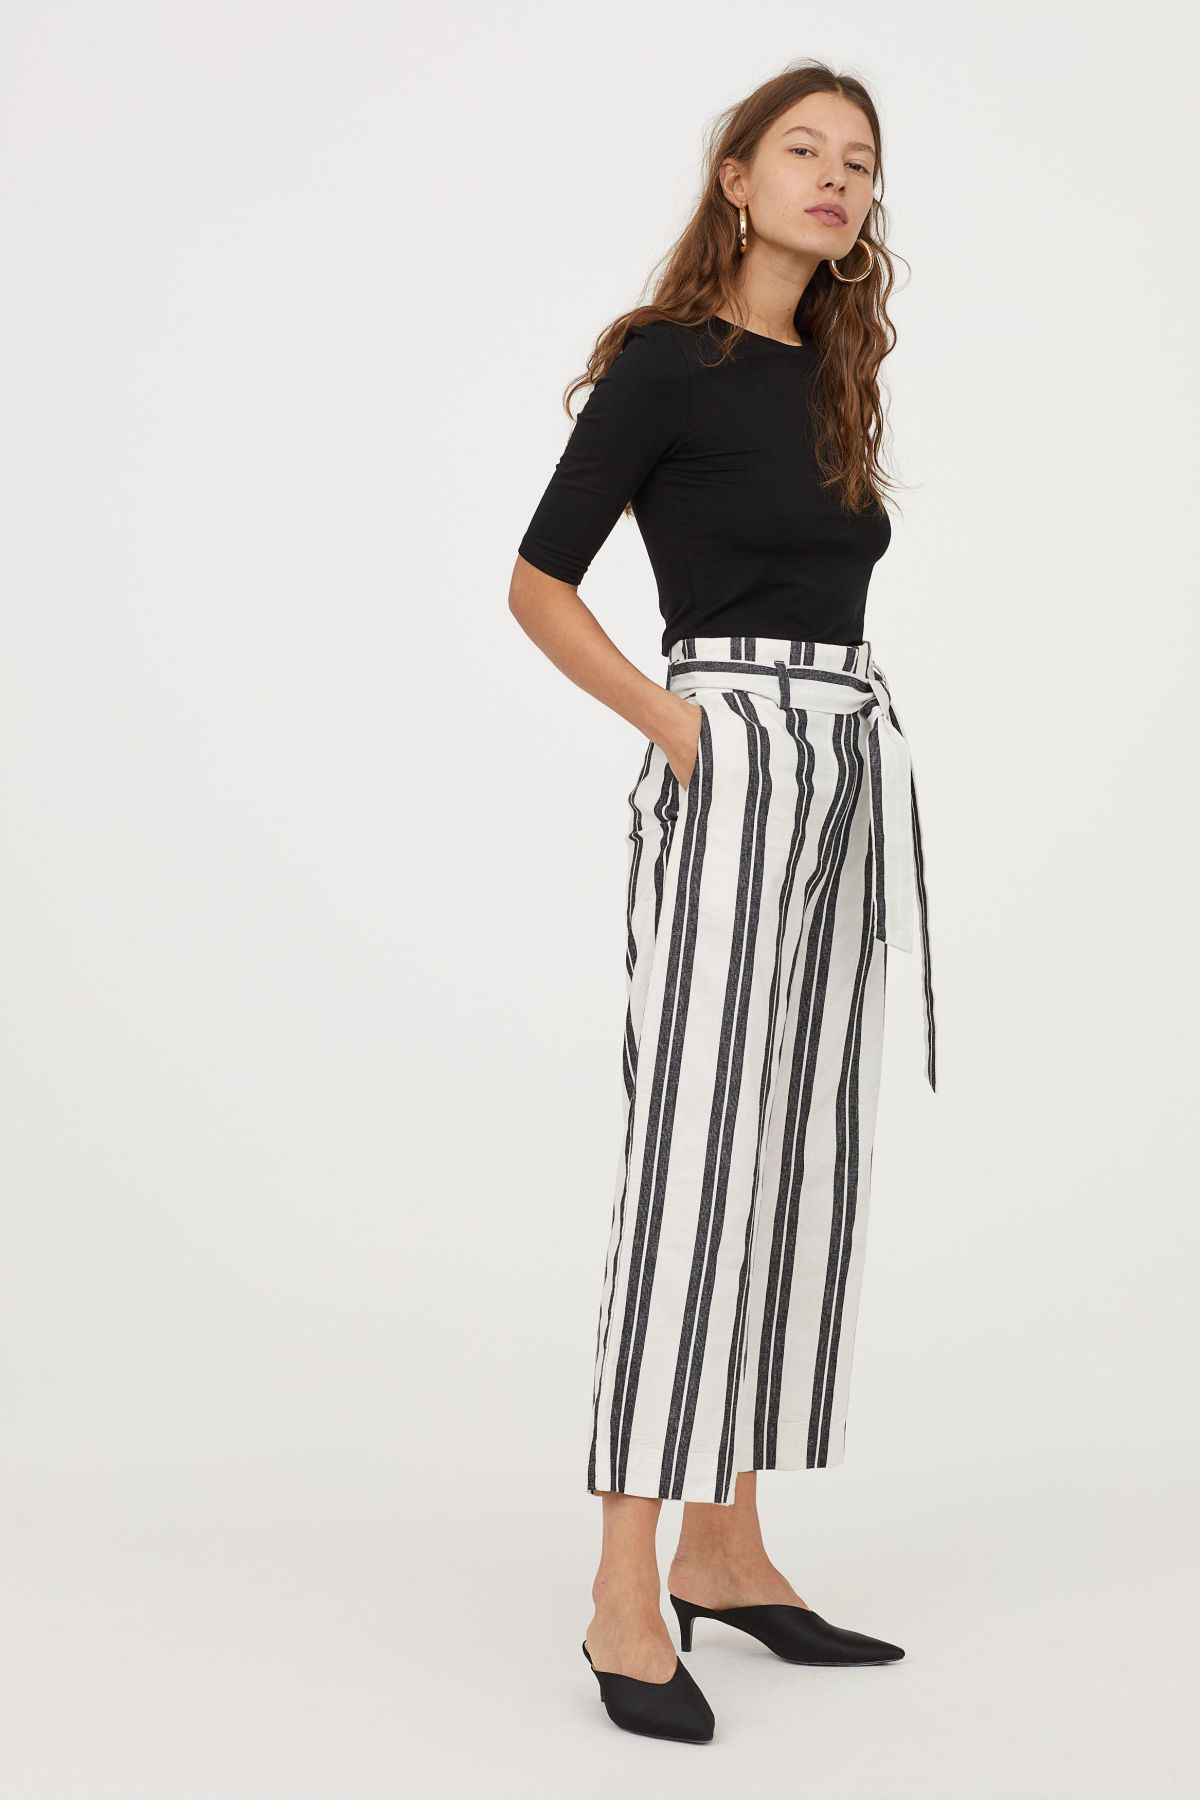 White Striped Ankle Length Pants In Soft Cotton Twill With A High Waist Removable Tie Belt And Hook And Eye Fasteners Zi Fashion Wide Trousers Cotton Pants